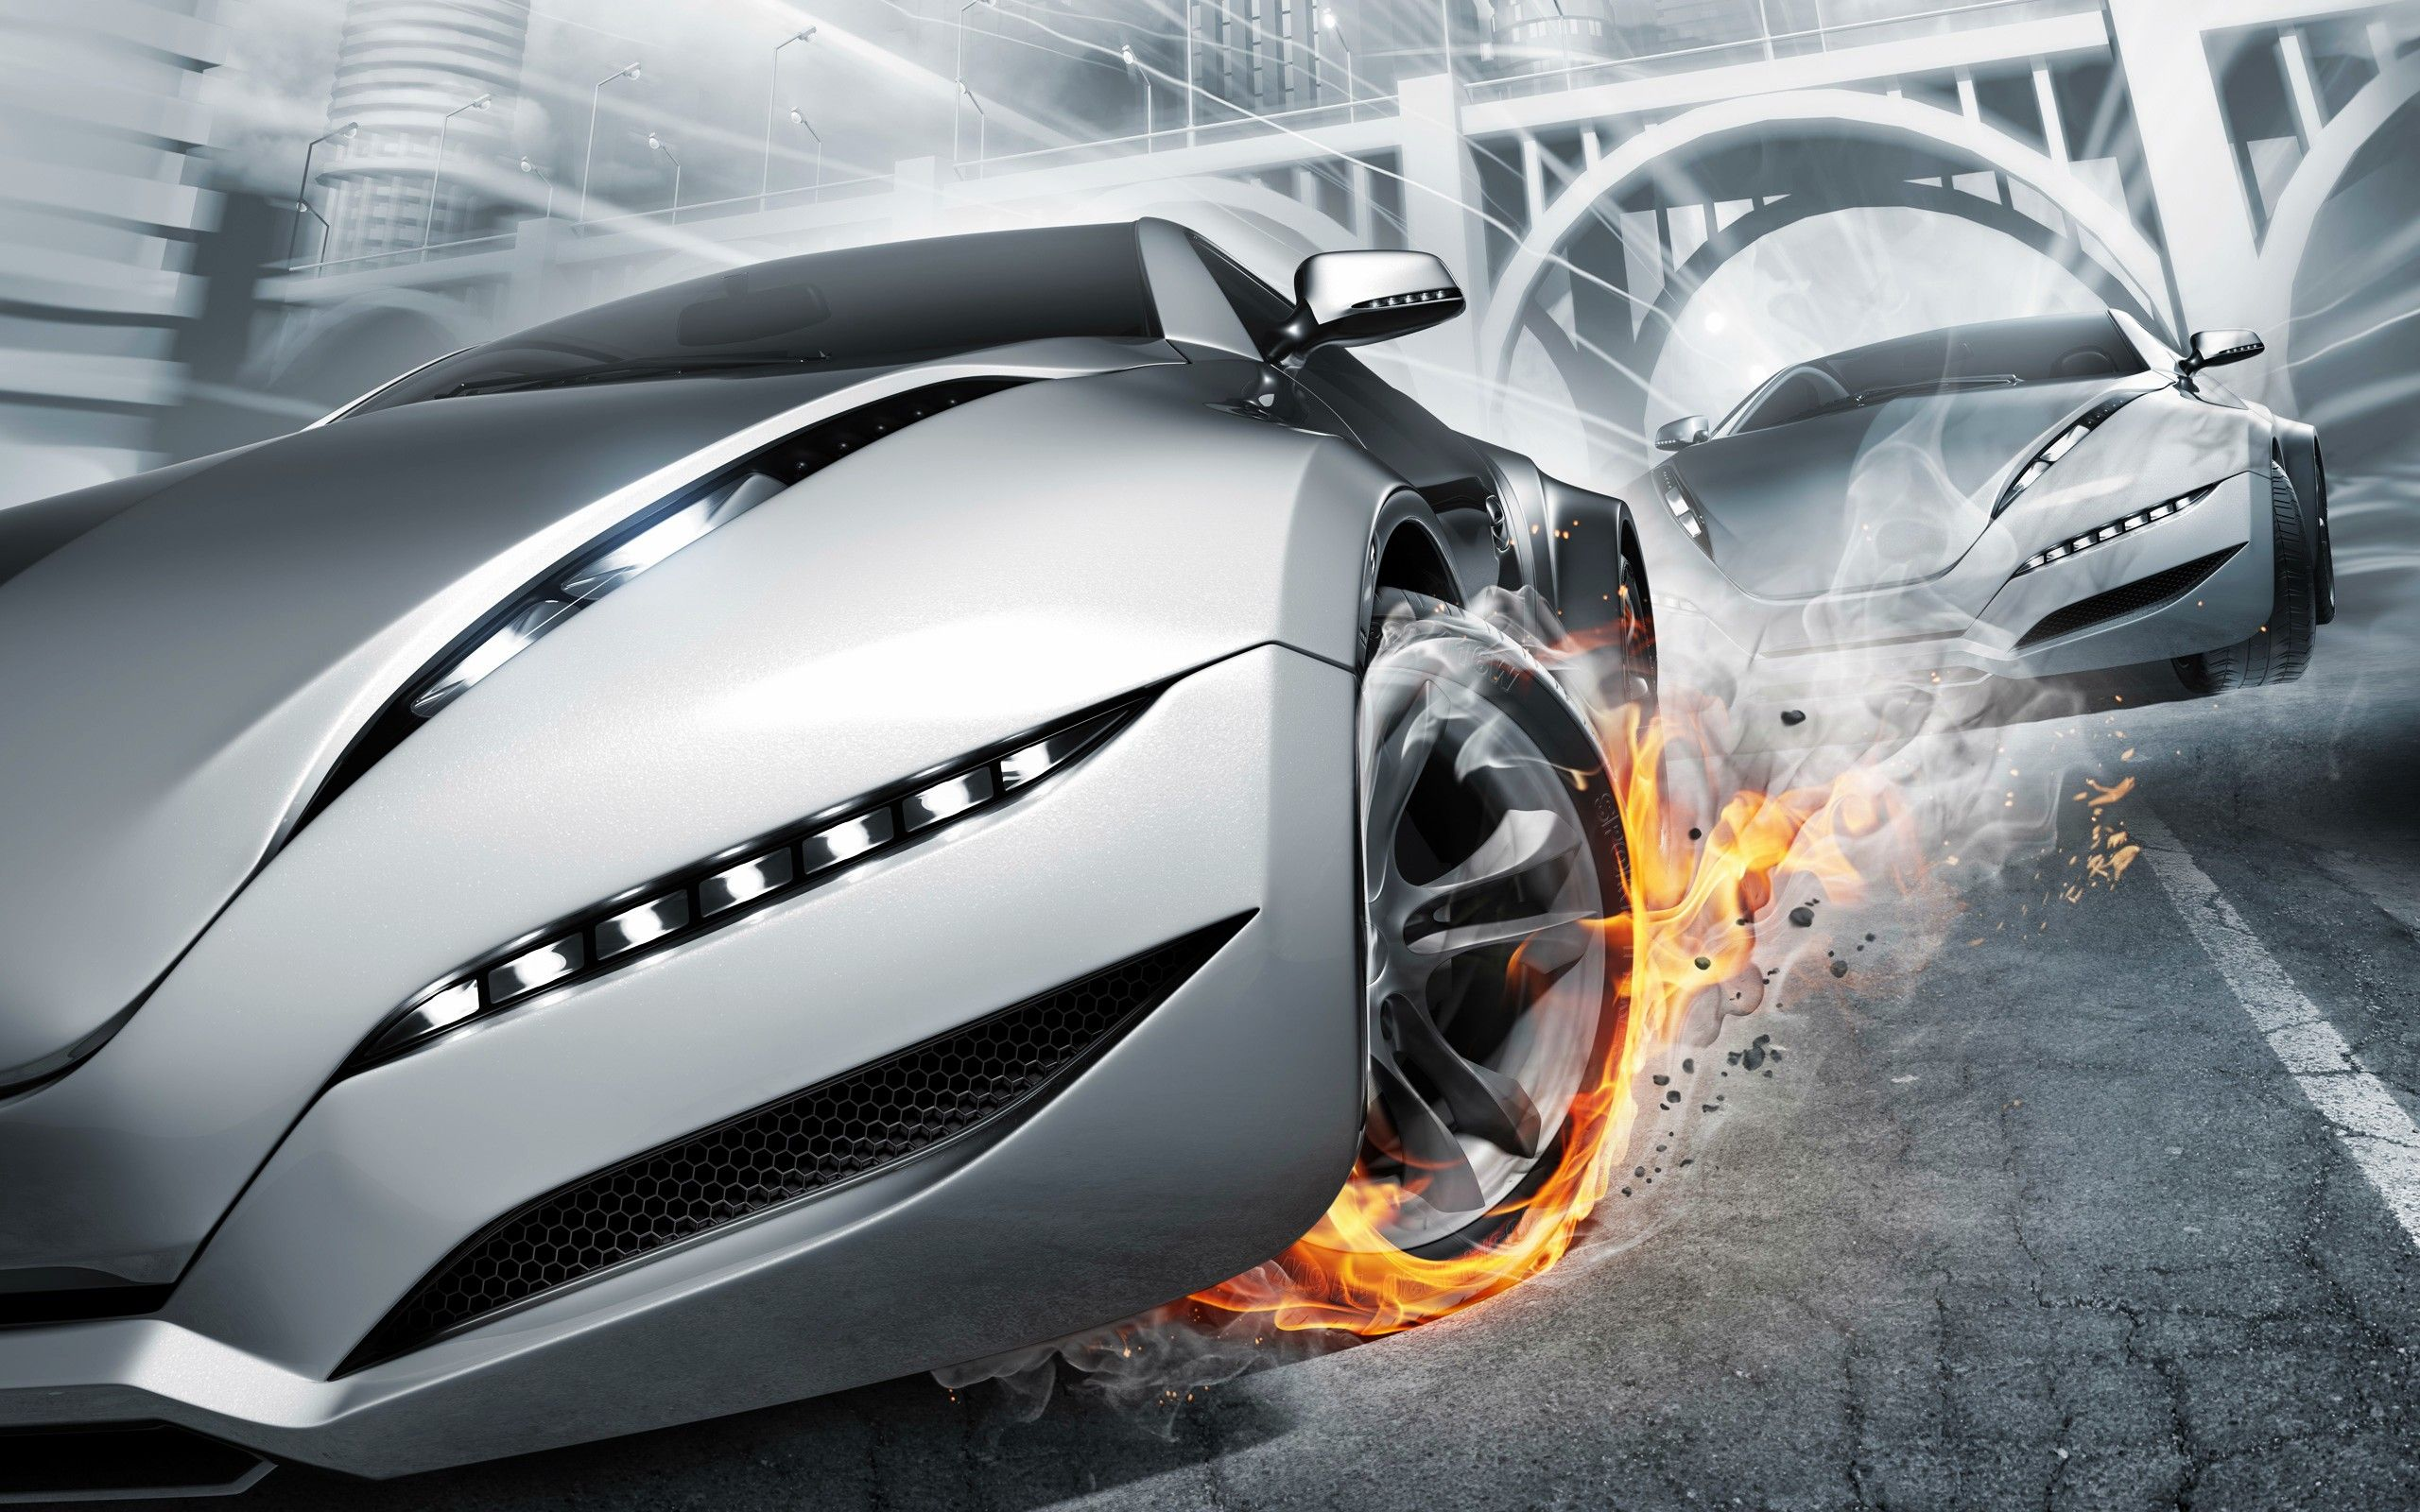 39 Best Free Abstract Full HD Car Wallpapers